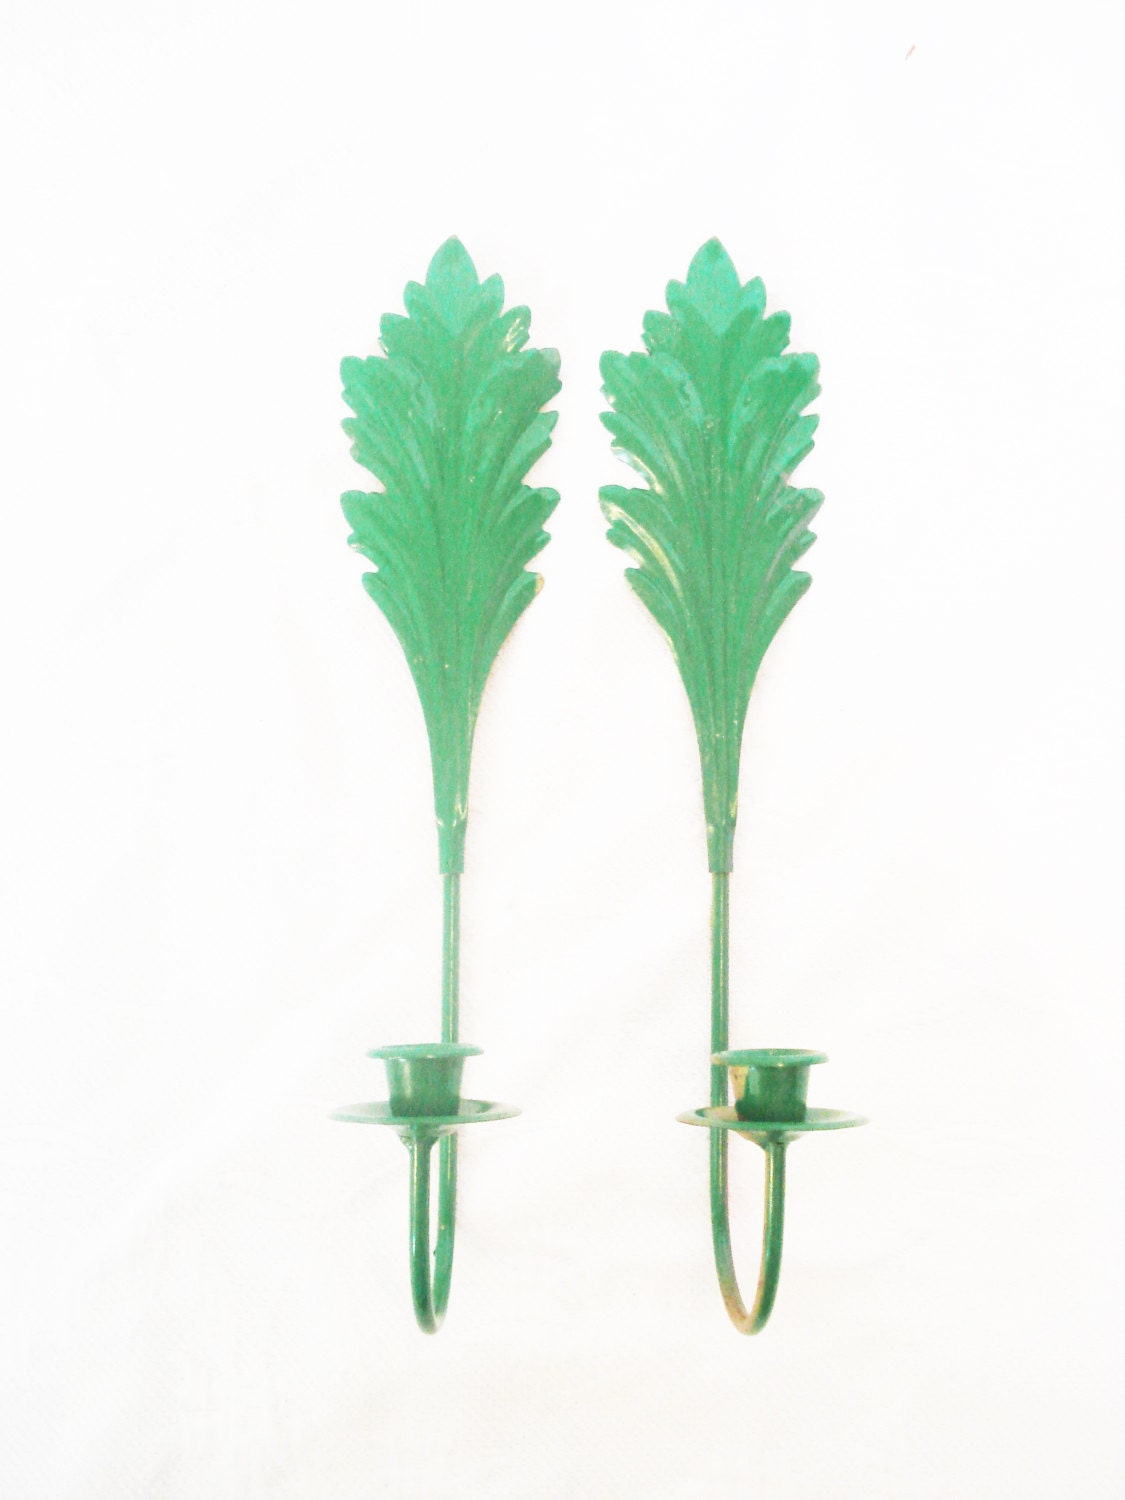 Wall Sconces For Greenery : Green Wall Sconces vintage wall candle holders by RococoDecor